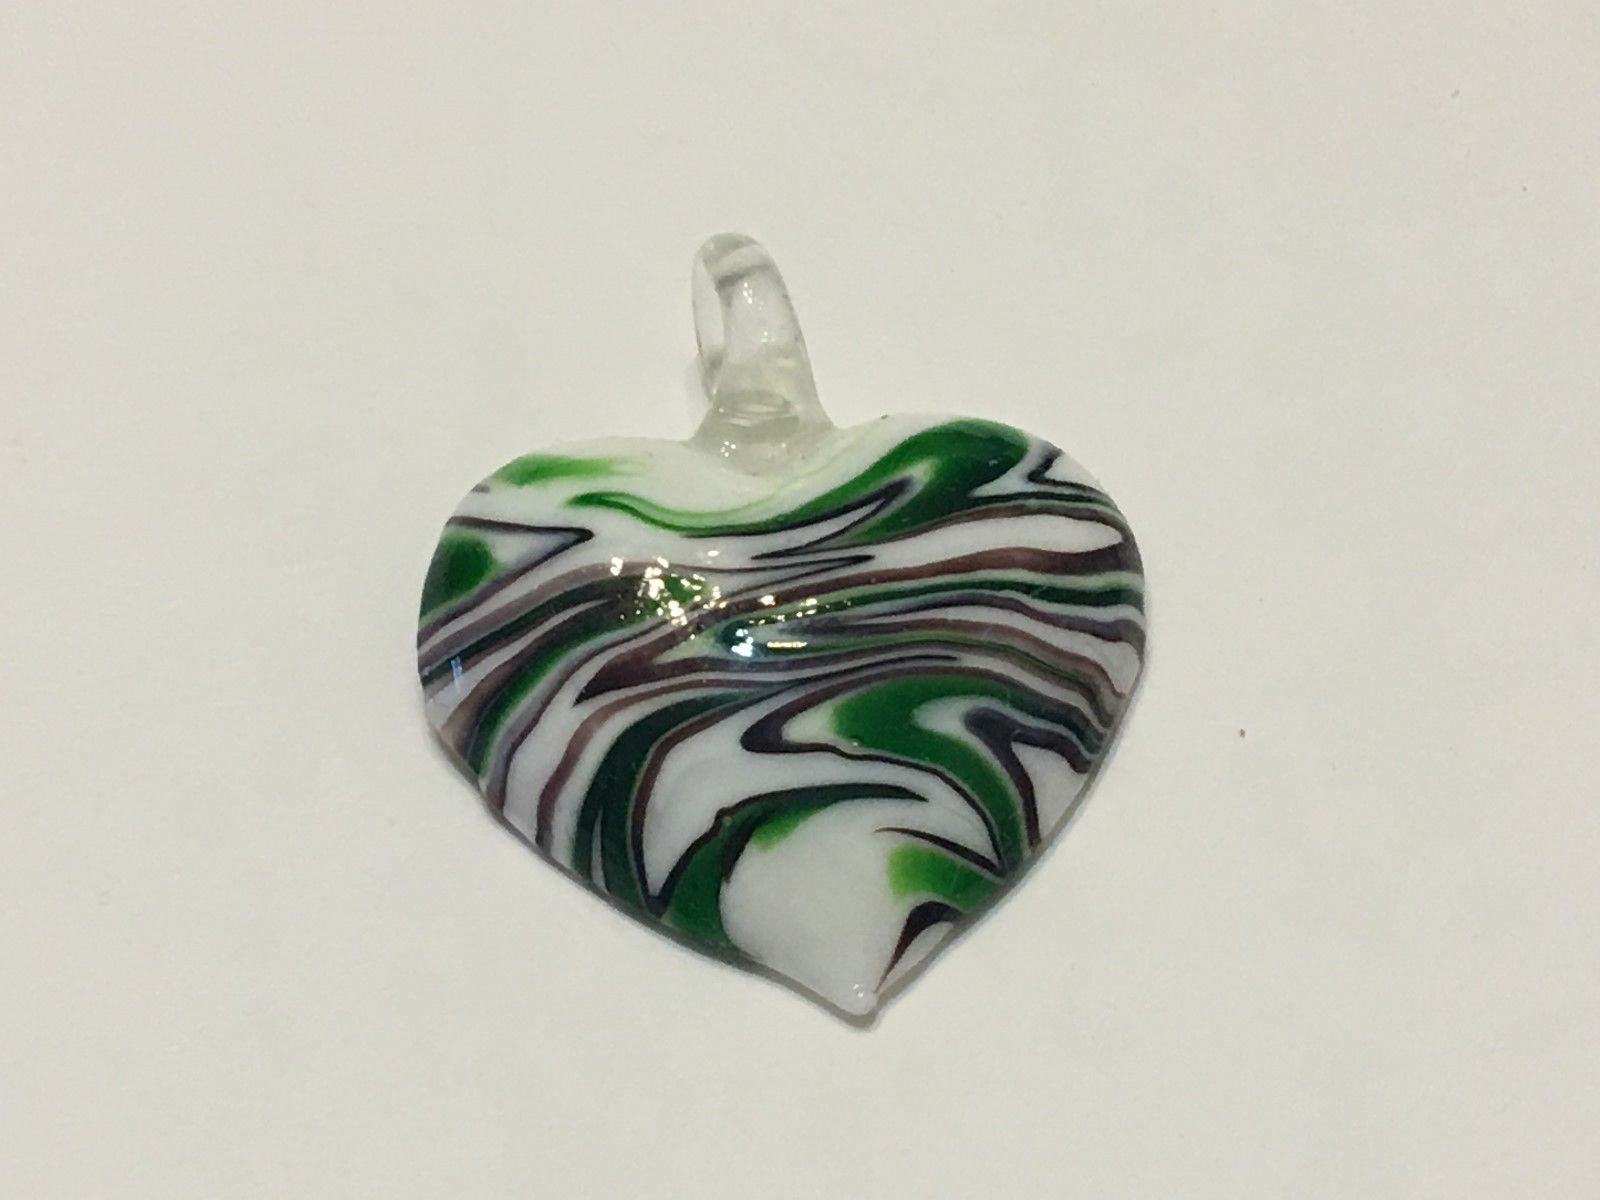 Hand Blown Glass Necklace Pendant ( Ref # 12-7 ) FREE SHIPPING